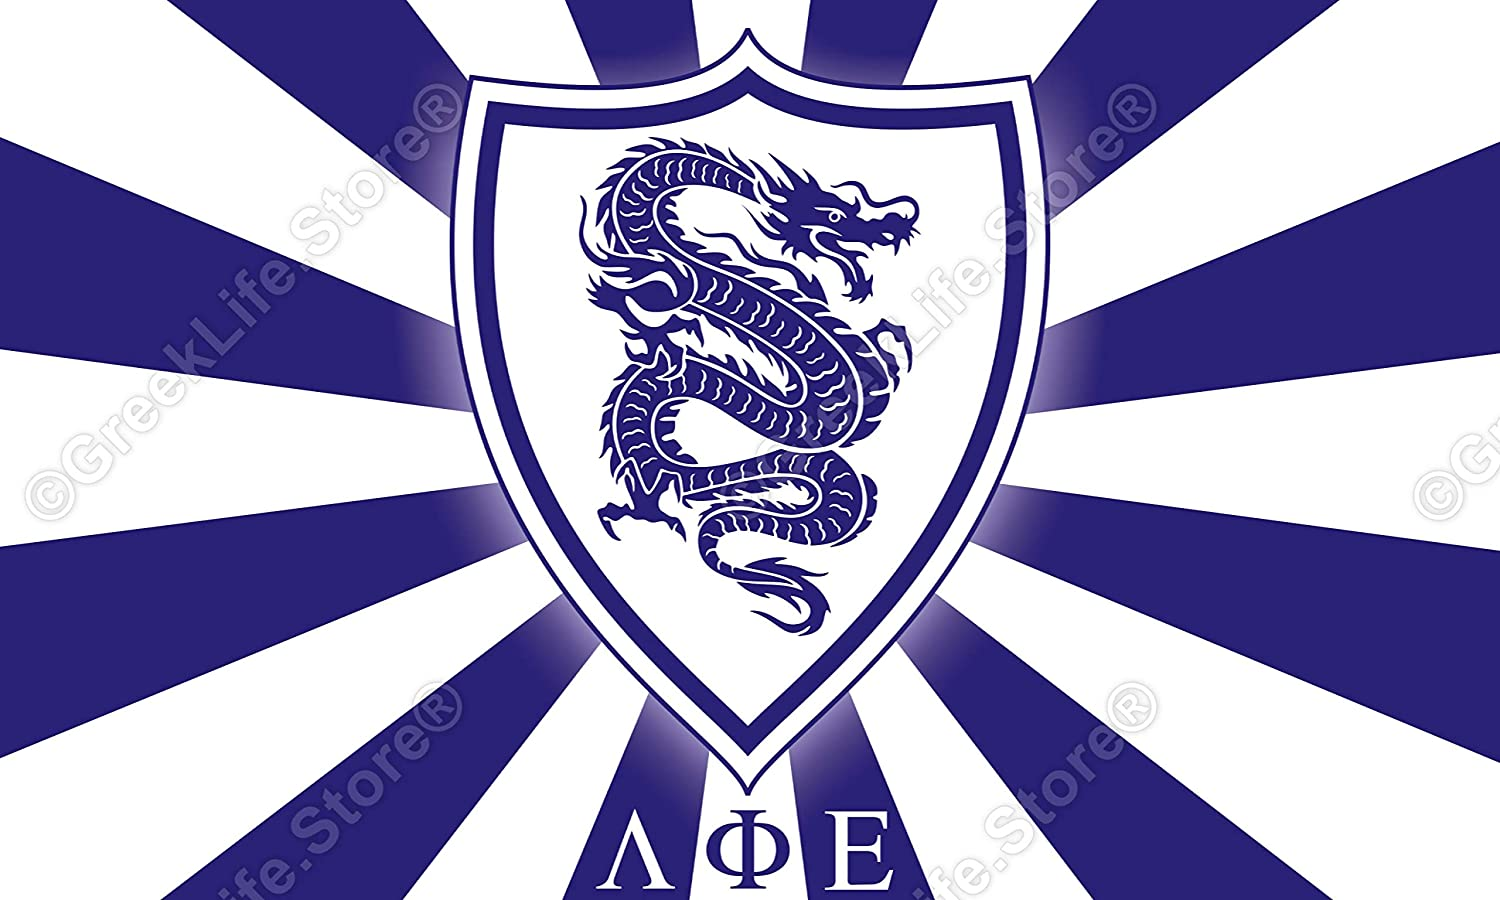 Lambda Phi Epsilon Officially Licensed Computer Tablet Decal Sticker 3x5 inches